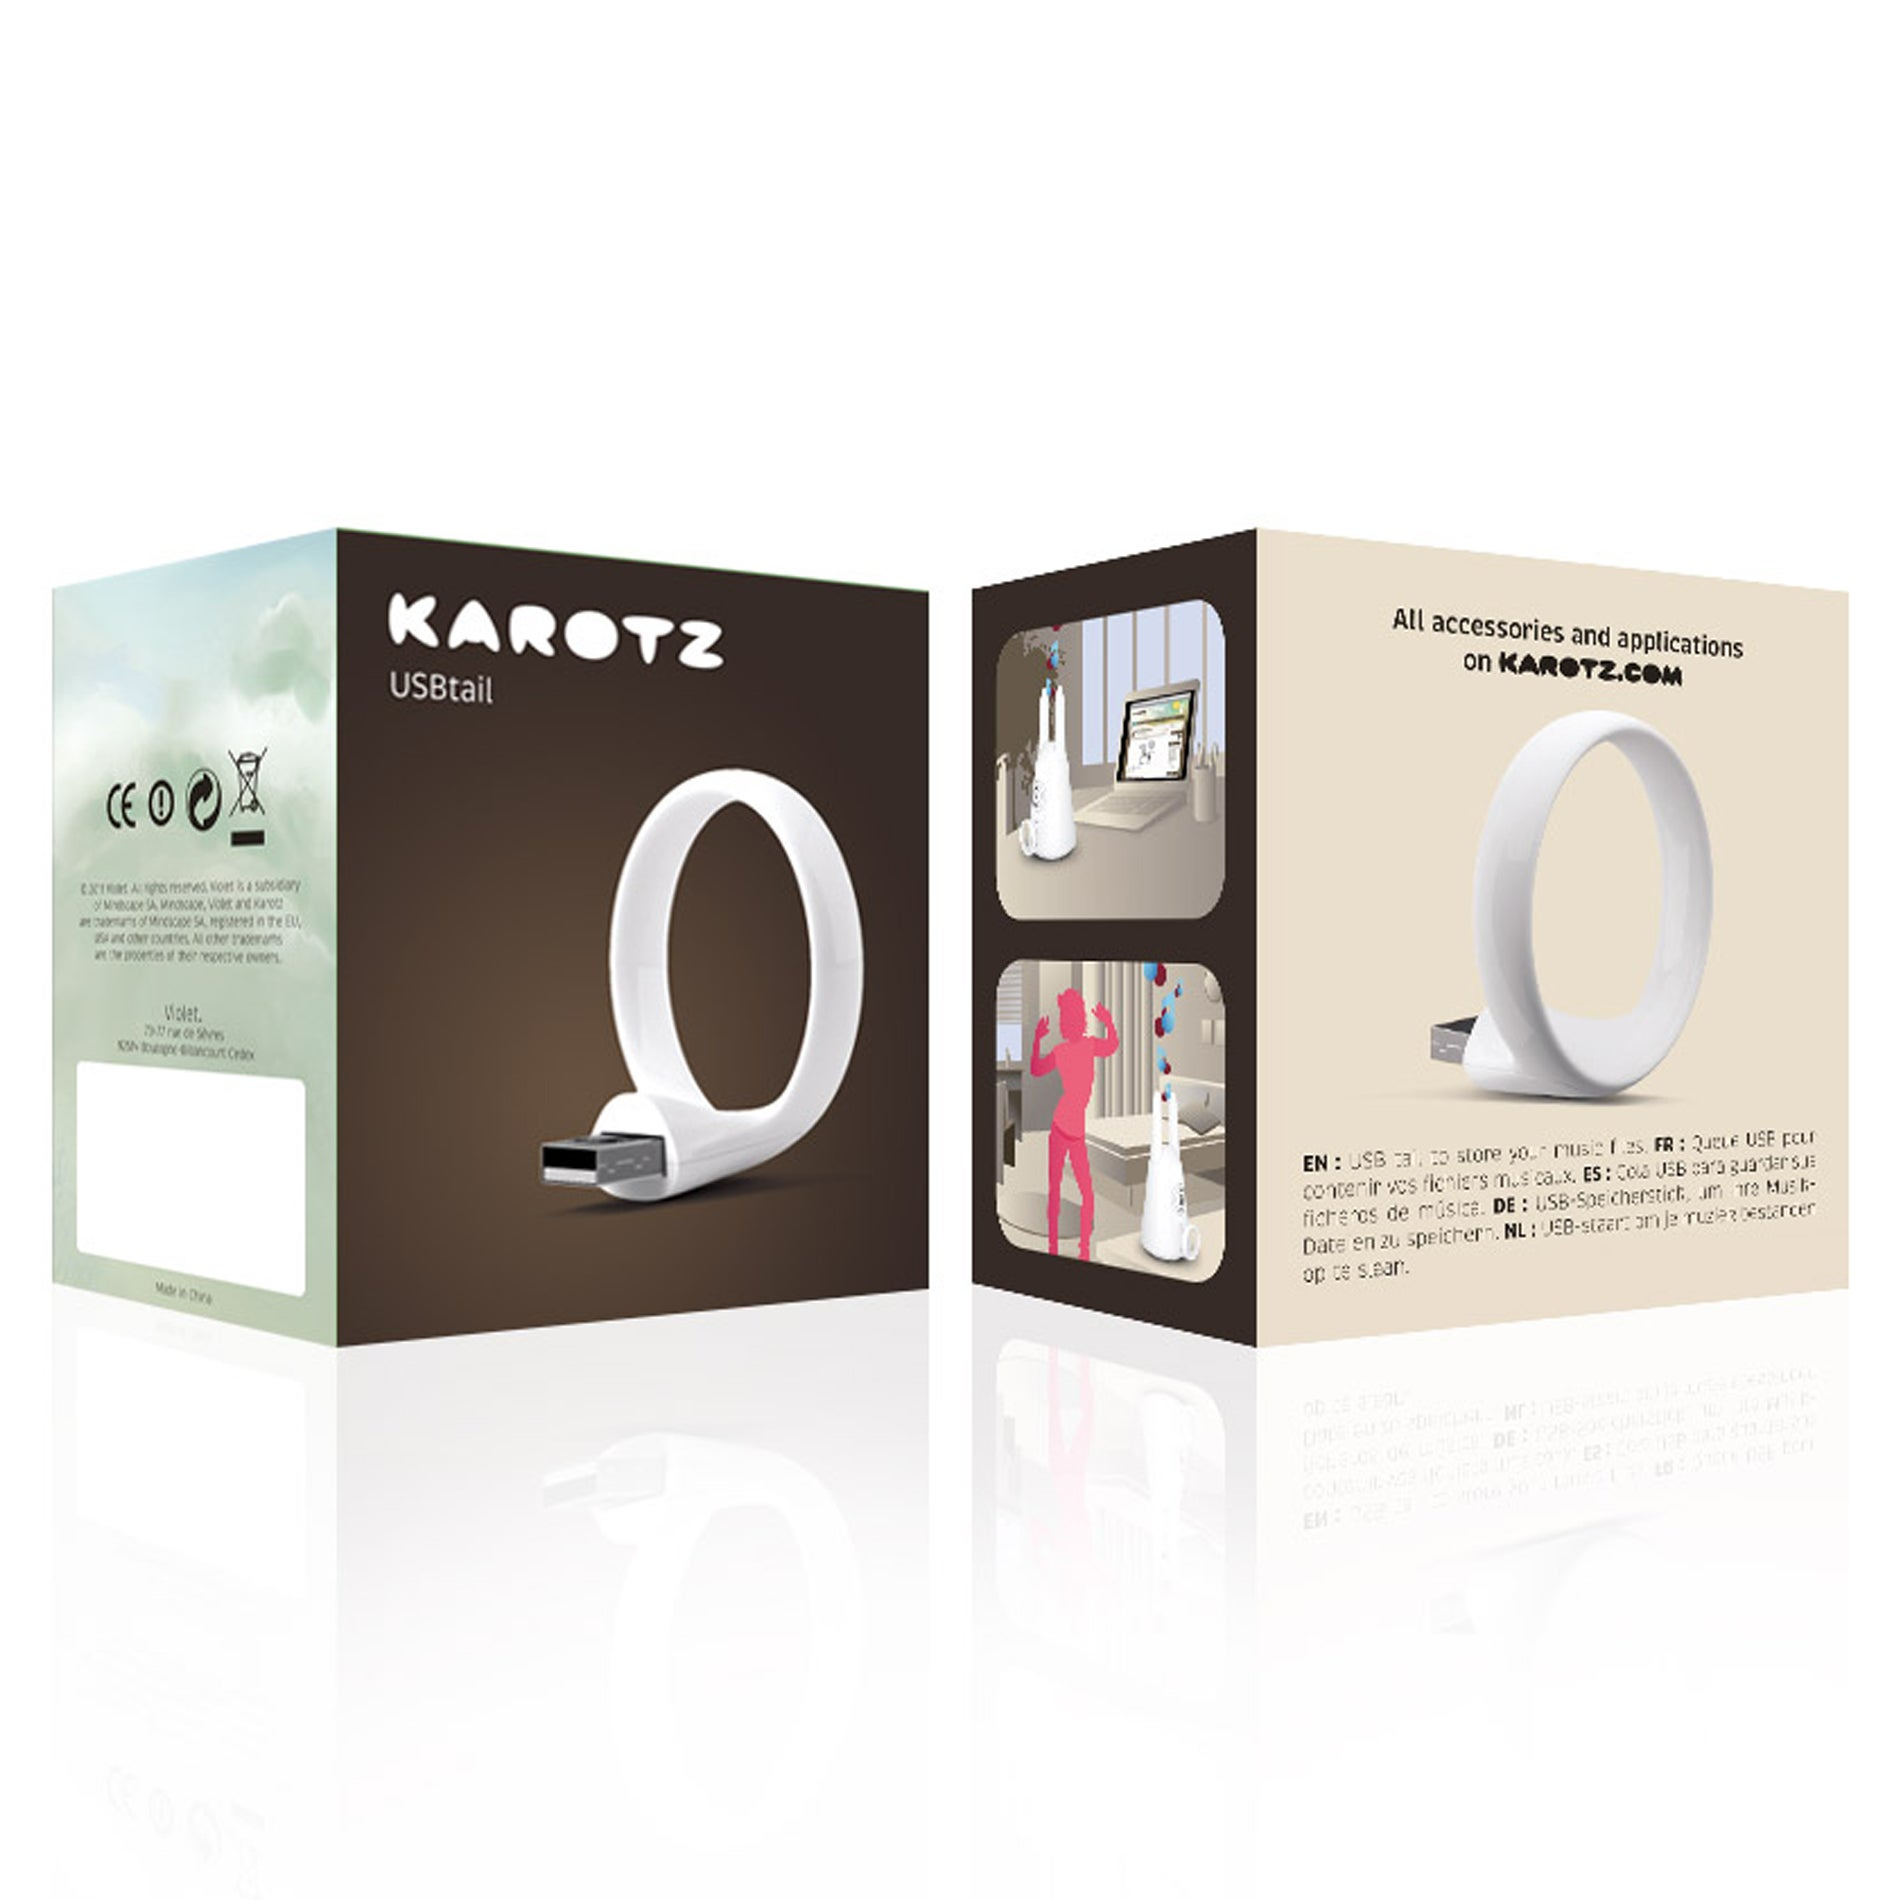 KAROTZ 4GB USB Tail Accessory - Thumbnail 0